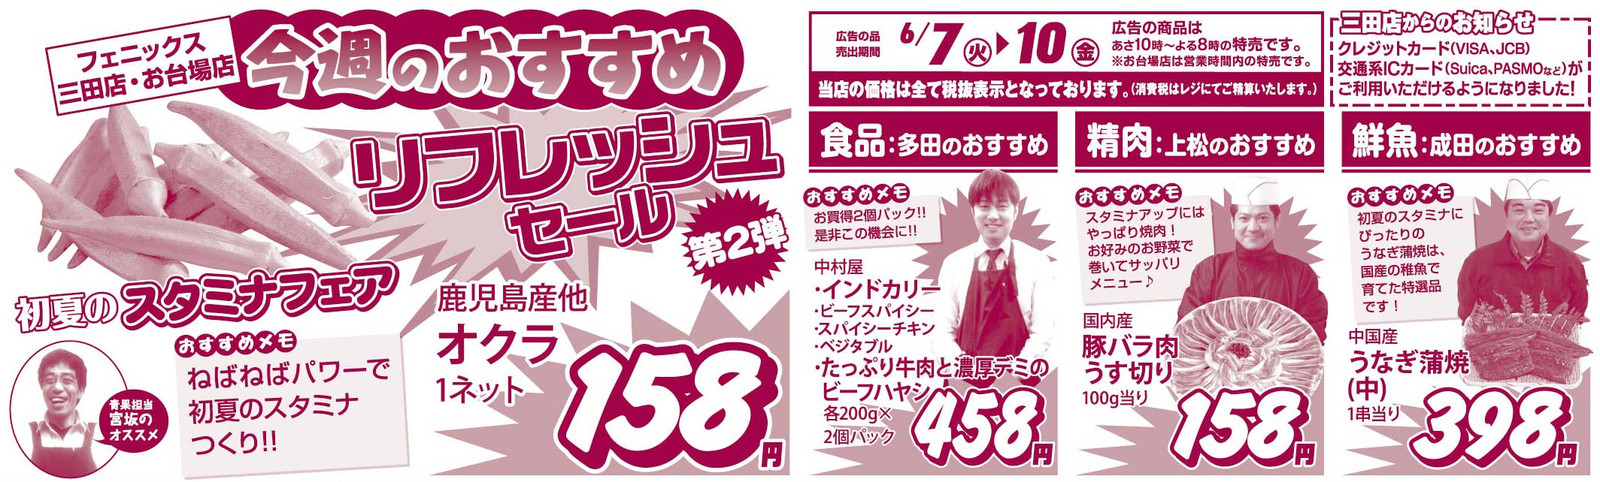 Flyer20160607_recommend